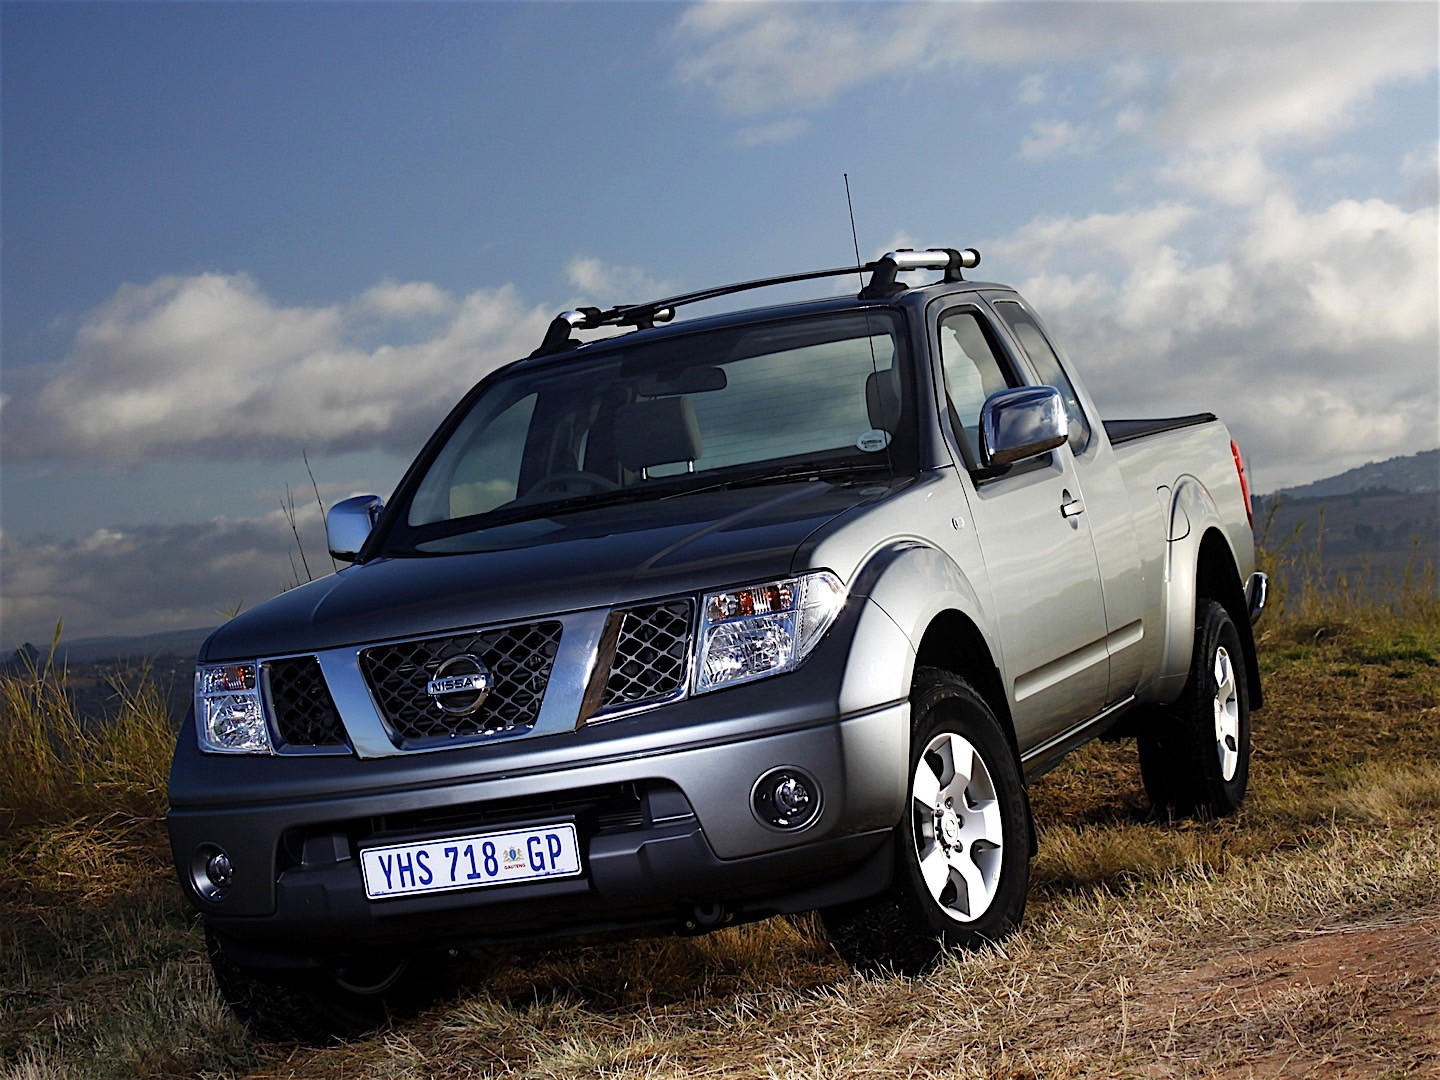 nissan navara frontier king cab specs photos 2005 2006 2007 2008 2009 2010 2011. Black Bedroom Furniture Sets. Home Design Ideas